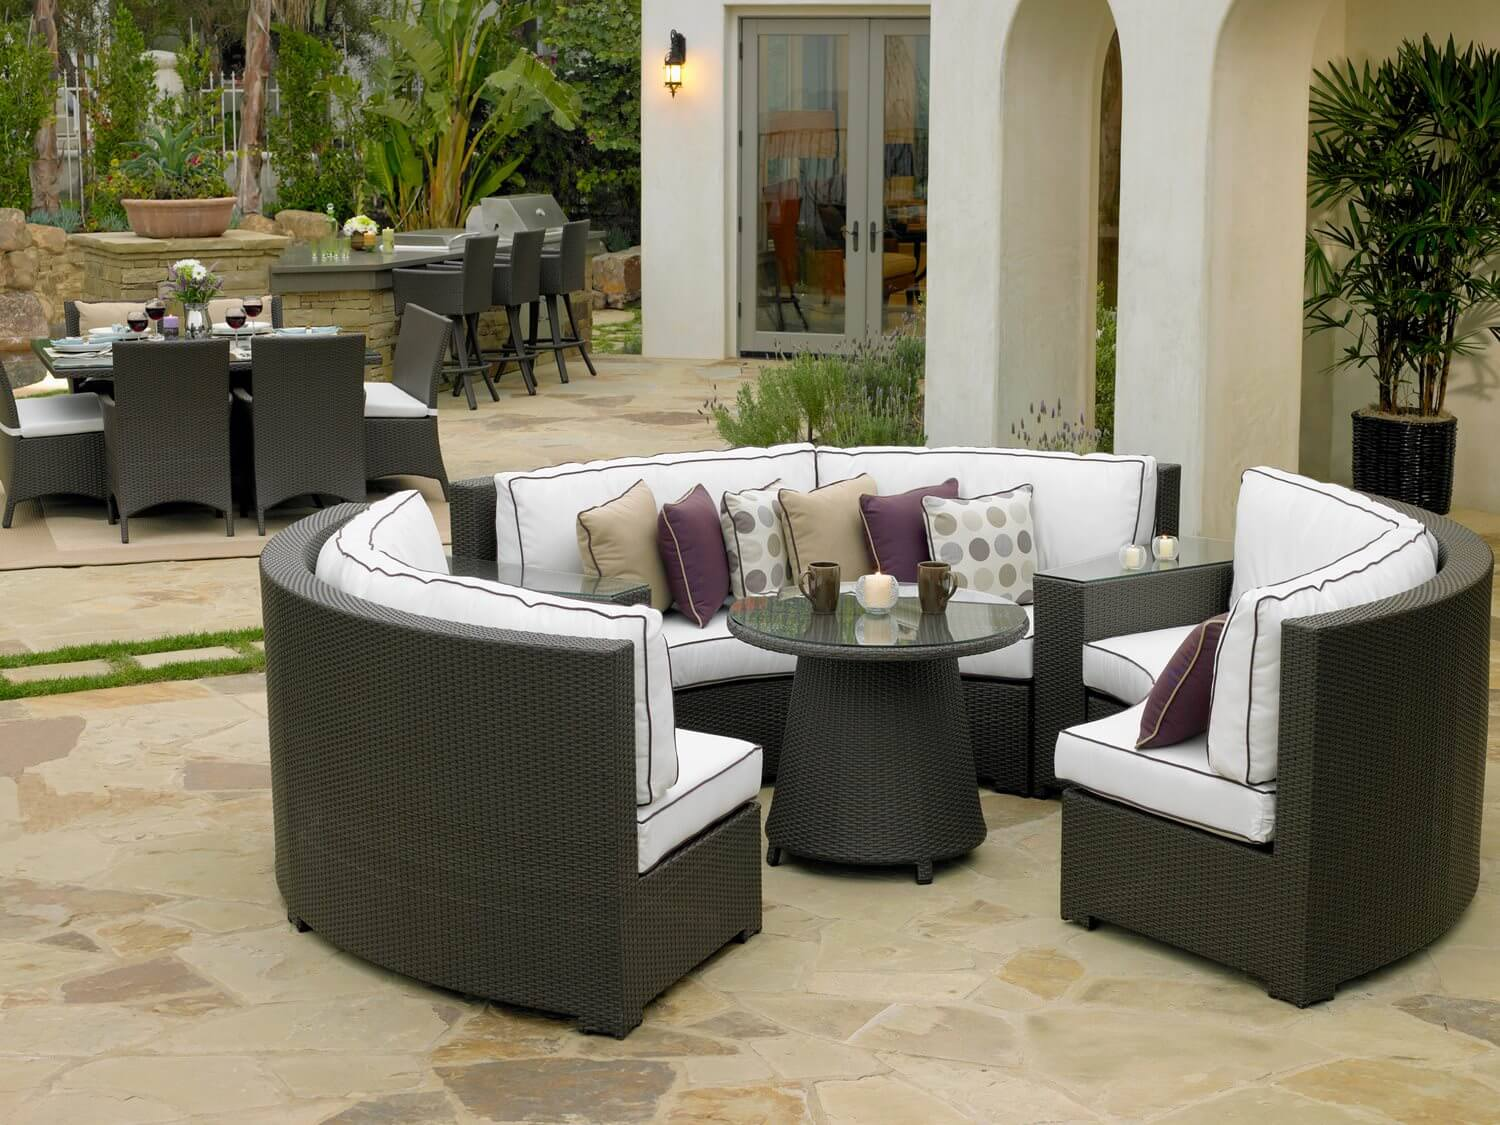 51 Brick Patio Patterns amp Designs RUNNING BOND  : Patio Sets Image 4 from www.homestratosphere.com size 1500 x 1125 jpeg 204kB